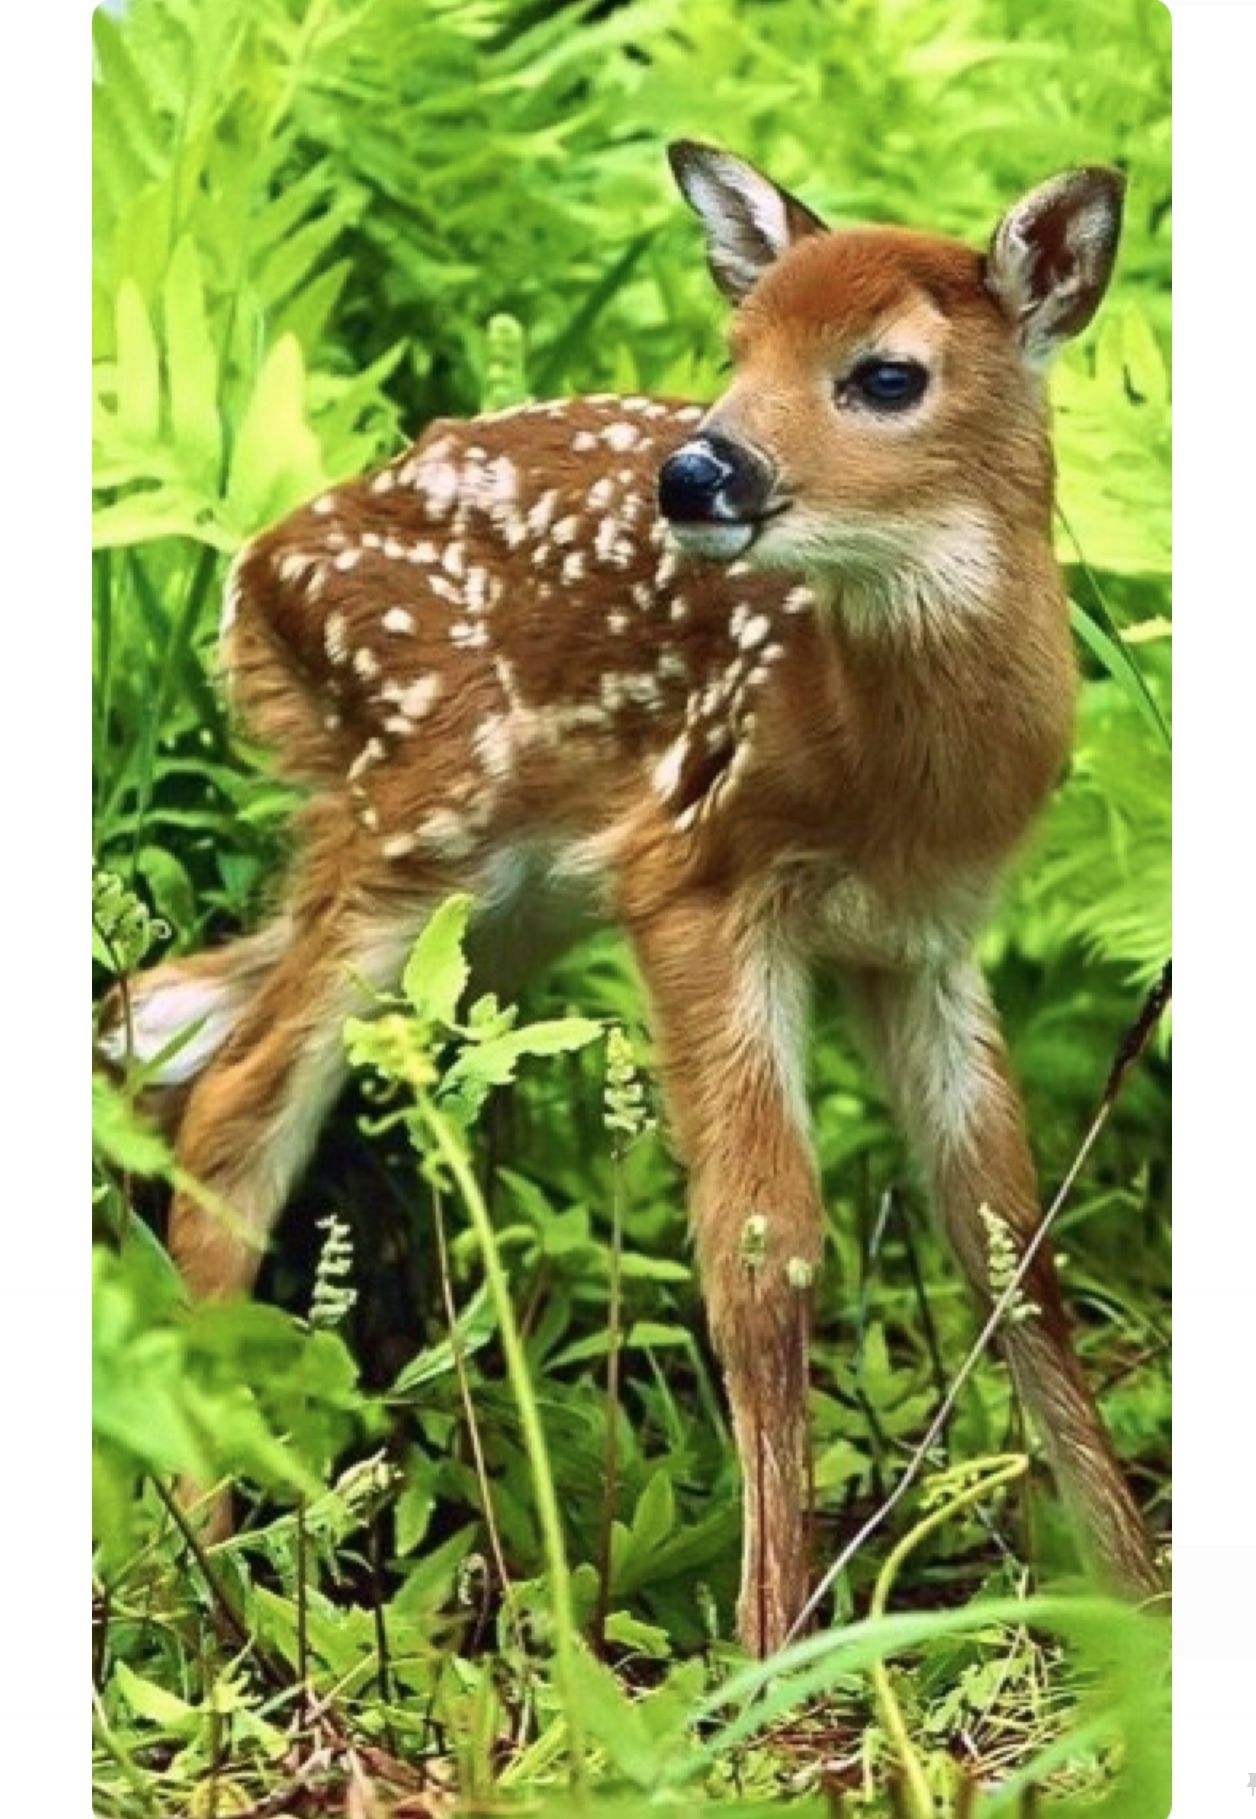 Dainty Little Spotted Fawn Pretty As A Picture Animals Beautiful Cute Animals Nature Animals